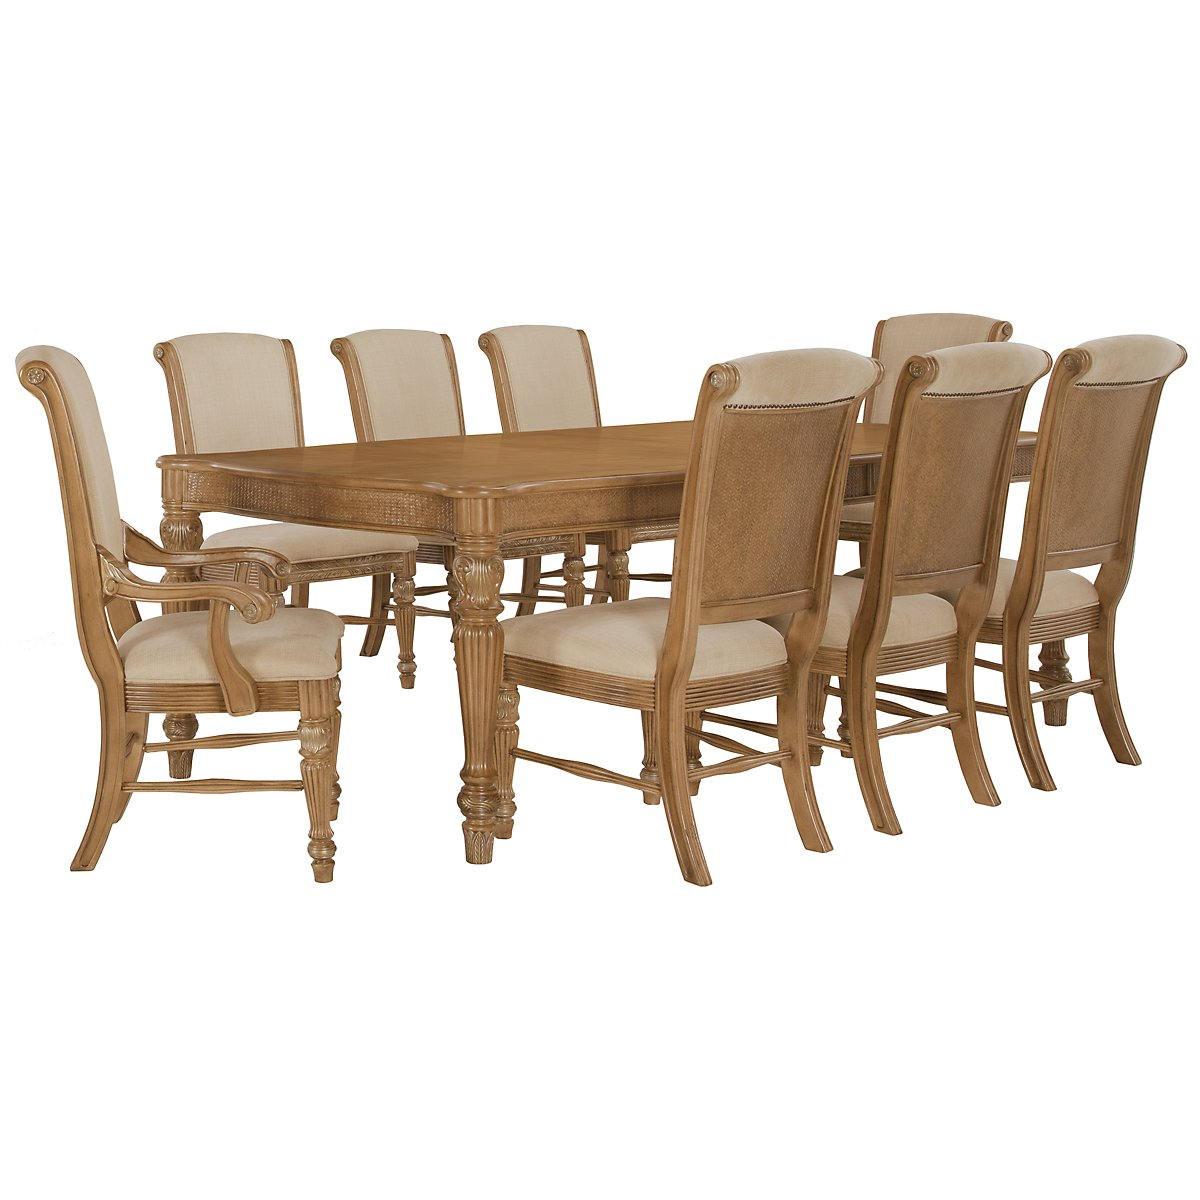 Tradewinds Light Tone Rectangular Table & 4 Upholstered Chairs